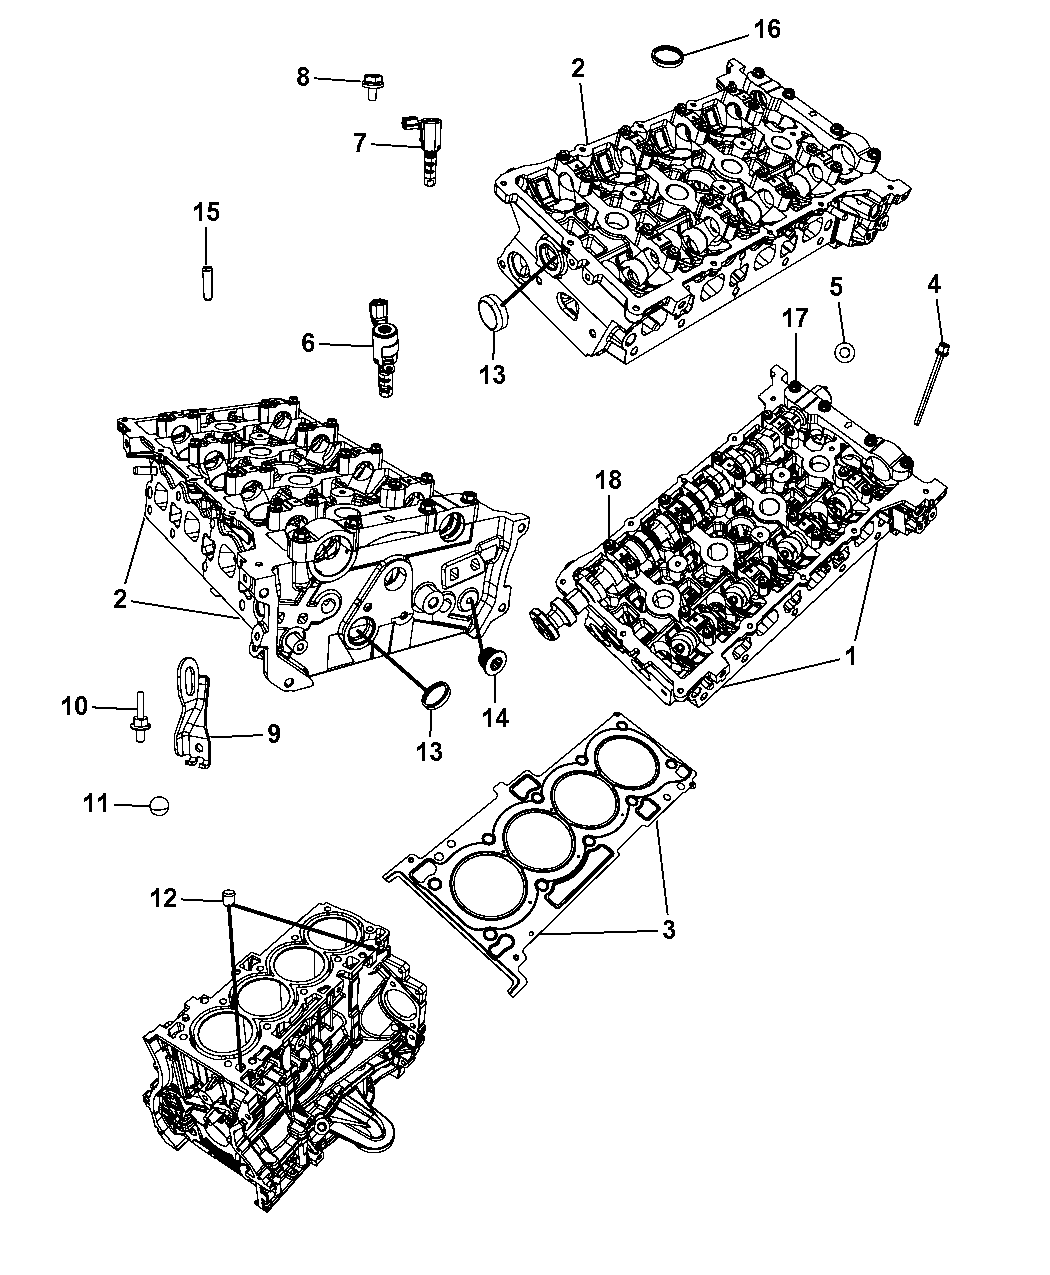 68034276AC - Genuine Mopar HEAD PKG-ENGINE CYLINDER